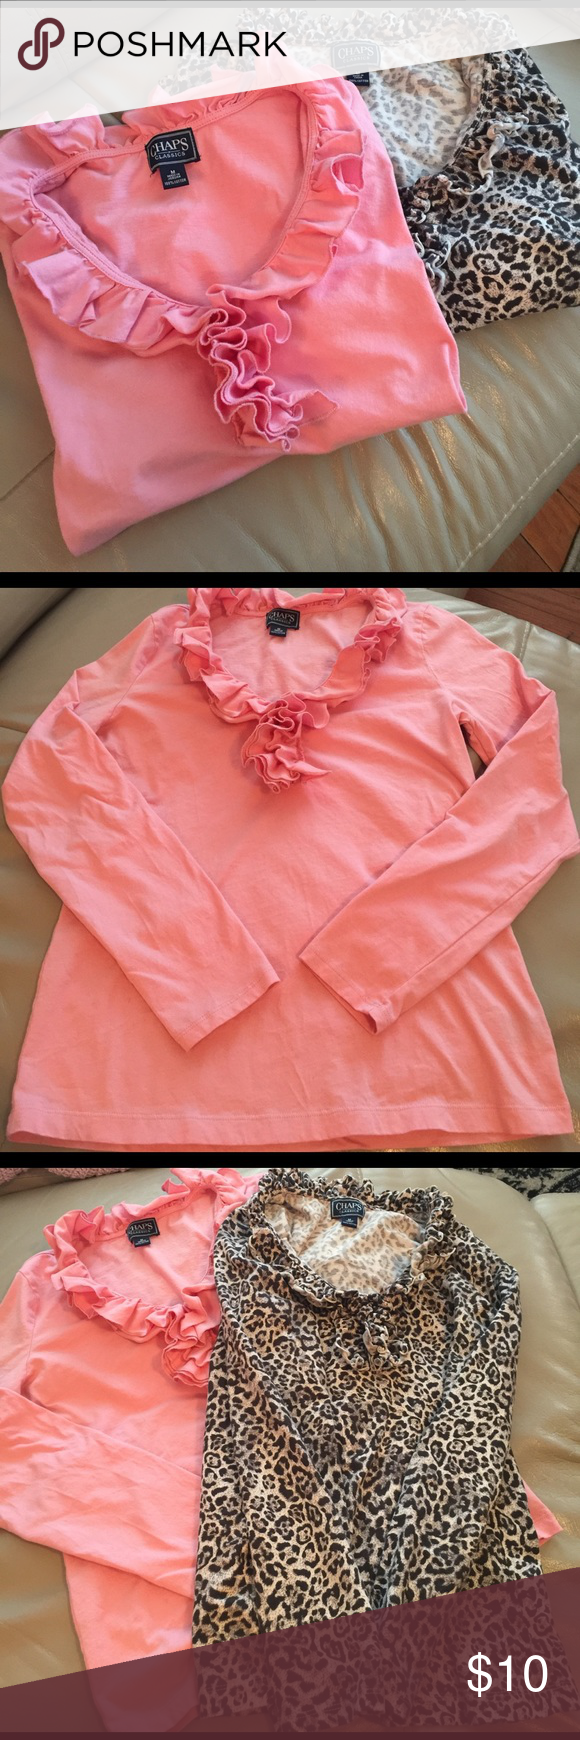 2/10.00... CHAPS ruffle long sleeve Pink one was never worn... long sleeve ... mediums... can separate for 8.00 a piece Chaps Tops Tees - Long Sleeve